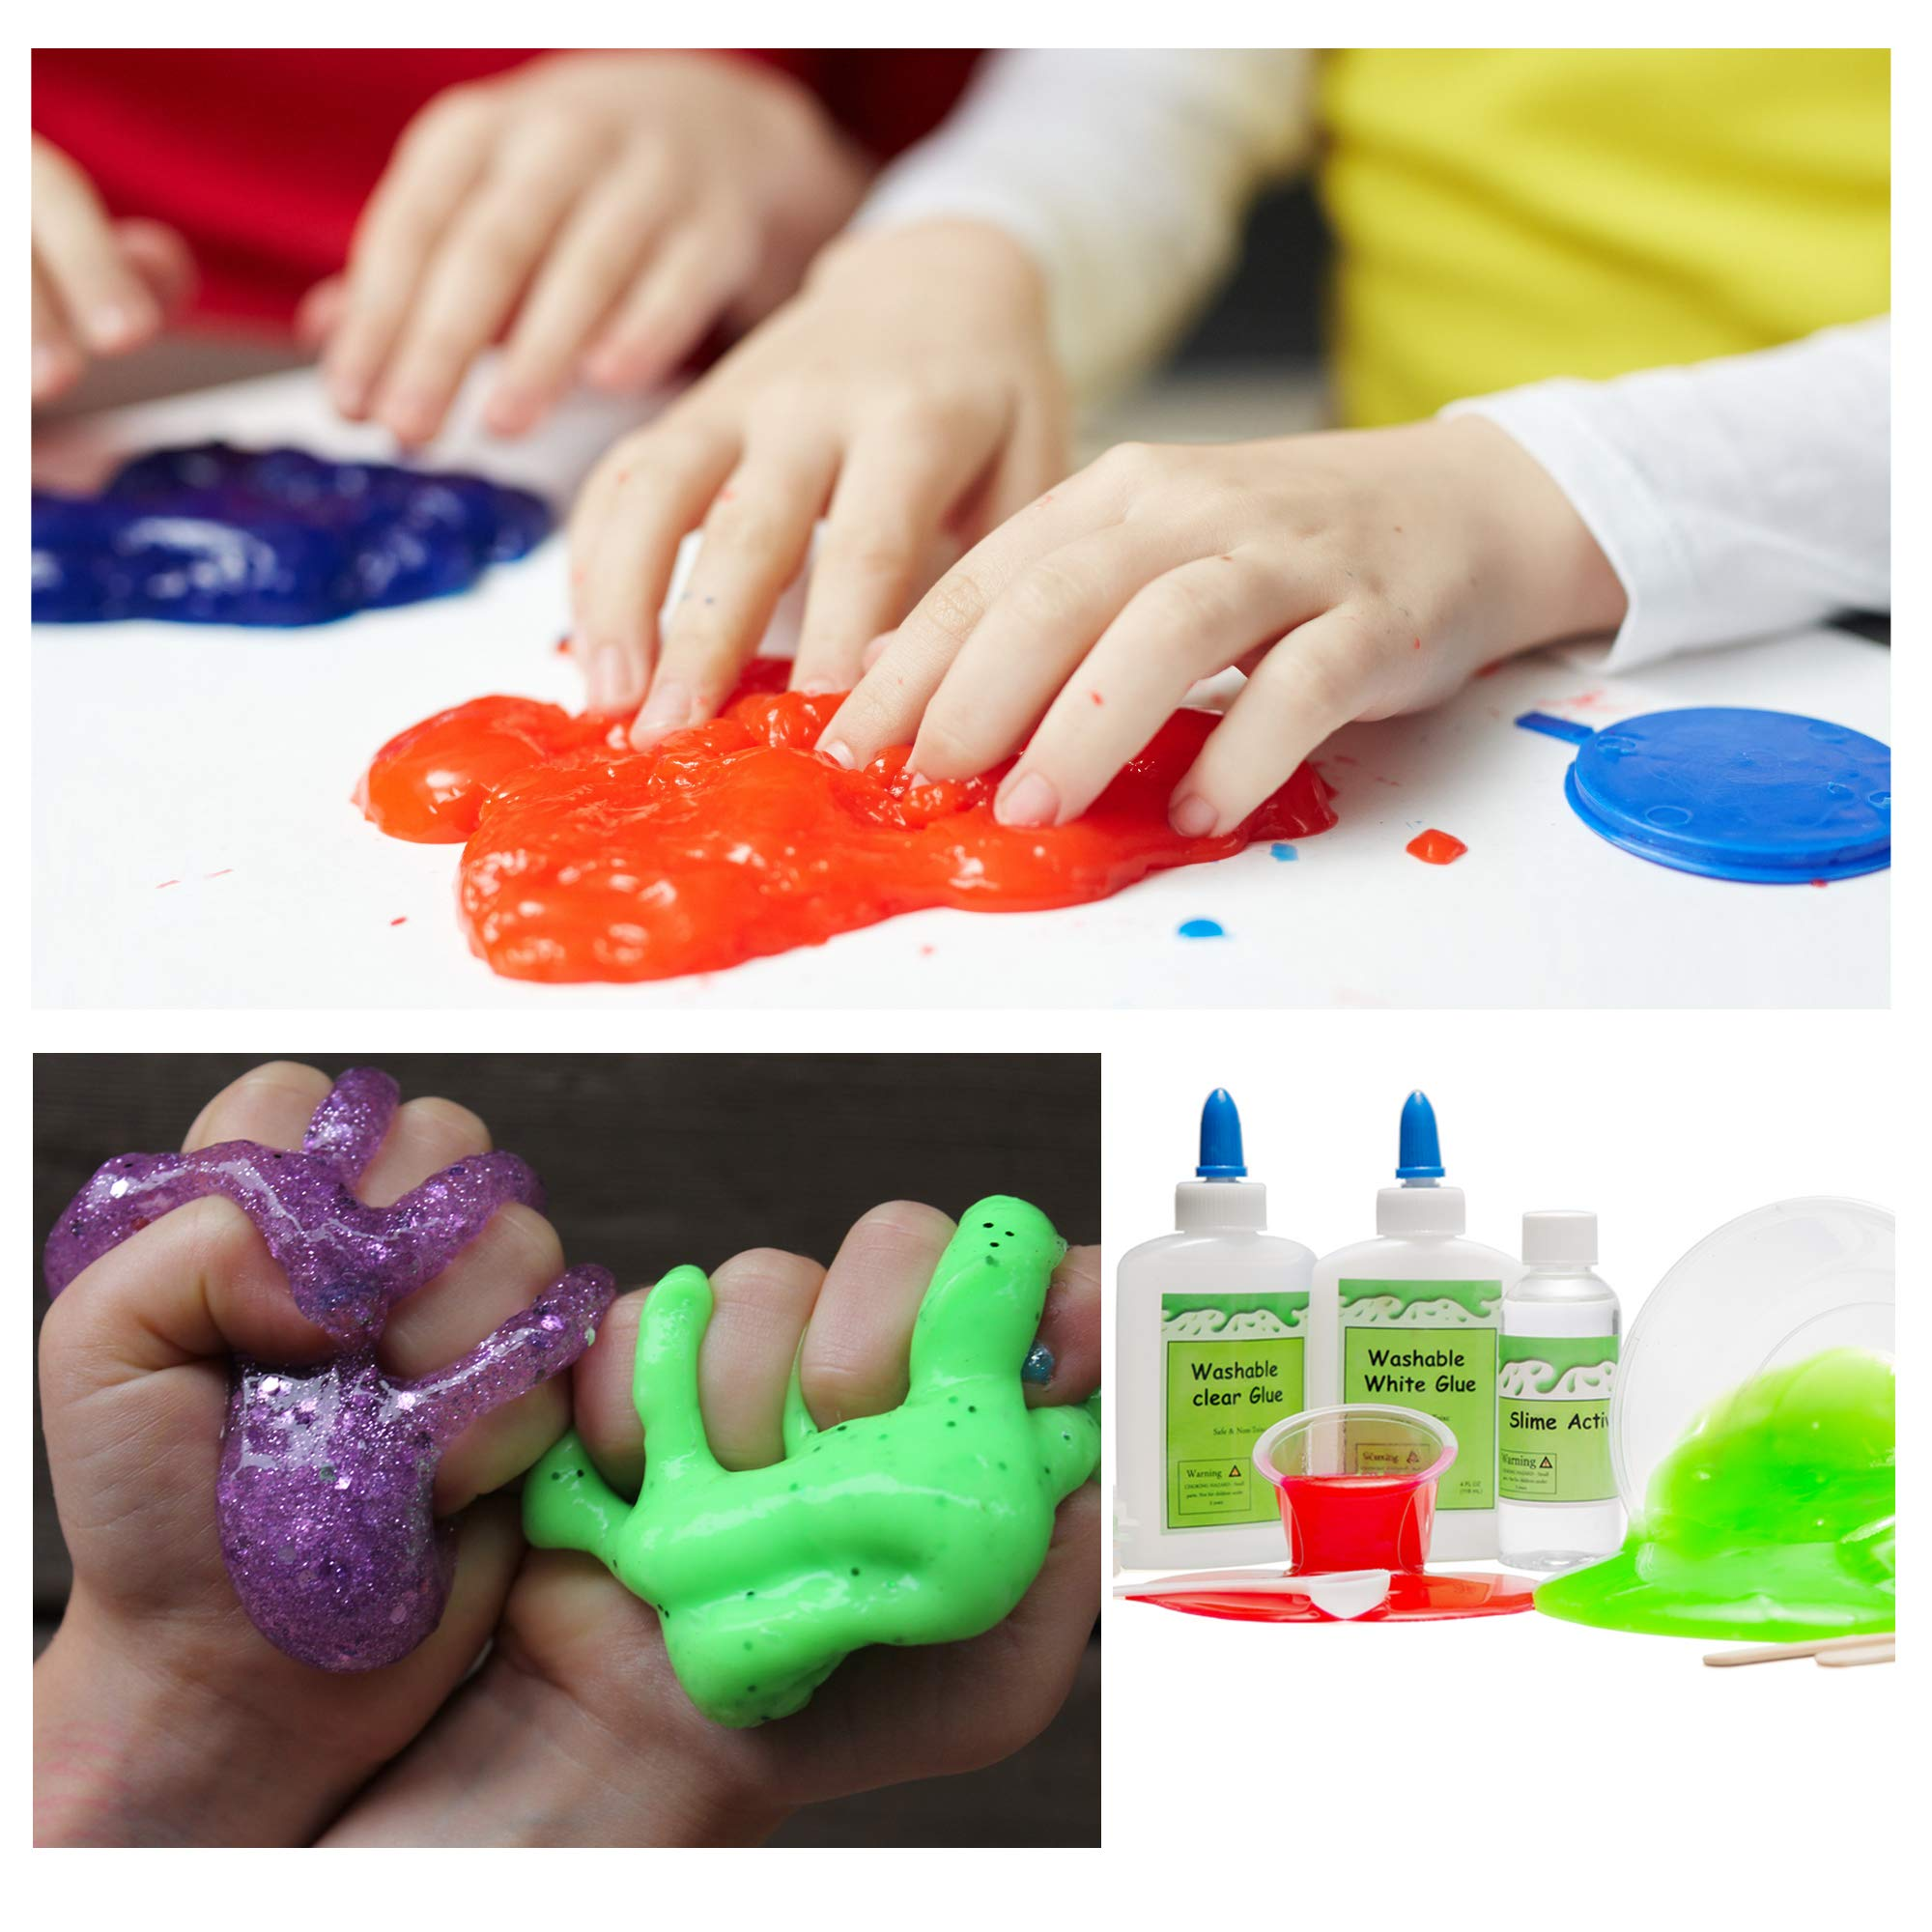 DIY Slime Kit -Learn how to make slime! Make Glow-In-The Dark, Clear, Neon and Glitter Slime - Perfect Gifting Option! Comes With Easy To Make Recipes! Super Slime Making Kit for Boys & Girls! by InStyleCraft (Image #4)